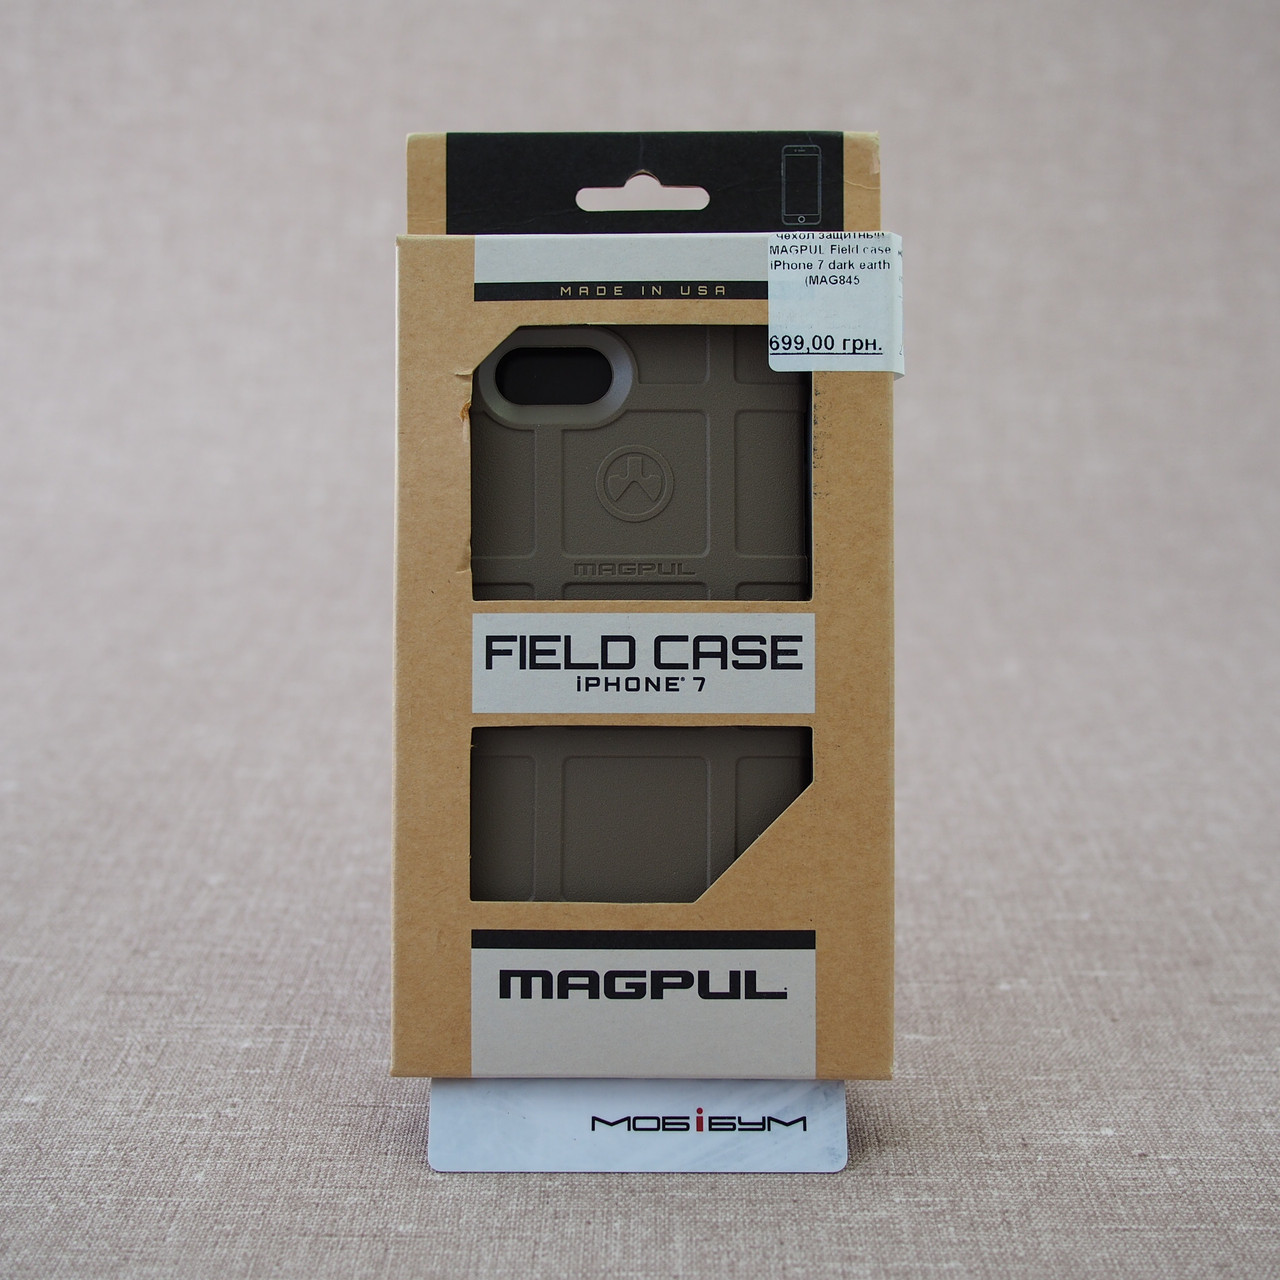 Чехол защитный MAGPUL Field case iPhone 7 dark earth (MAG845-FDE)